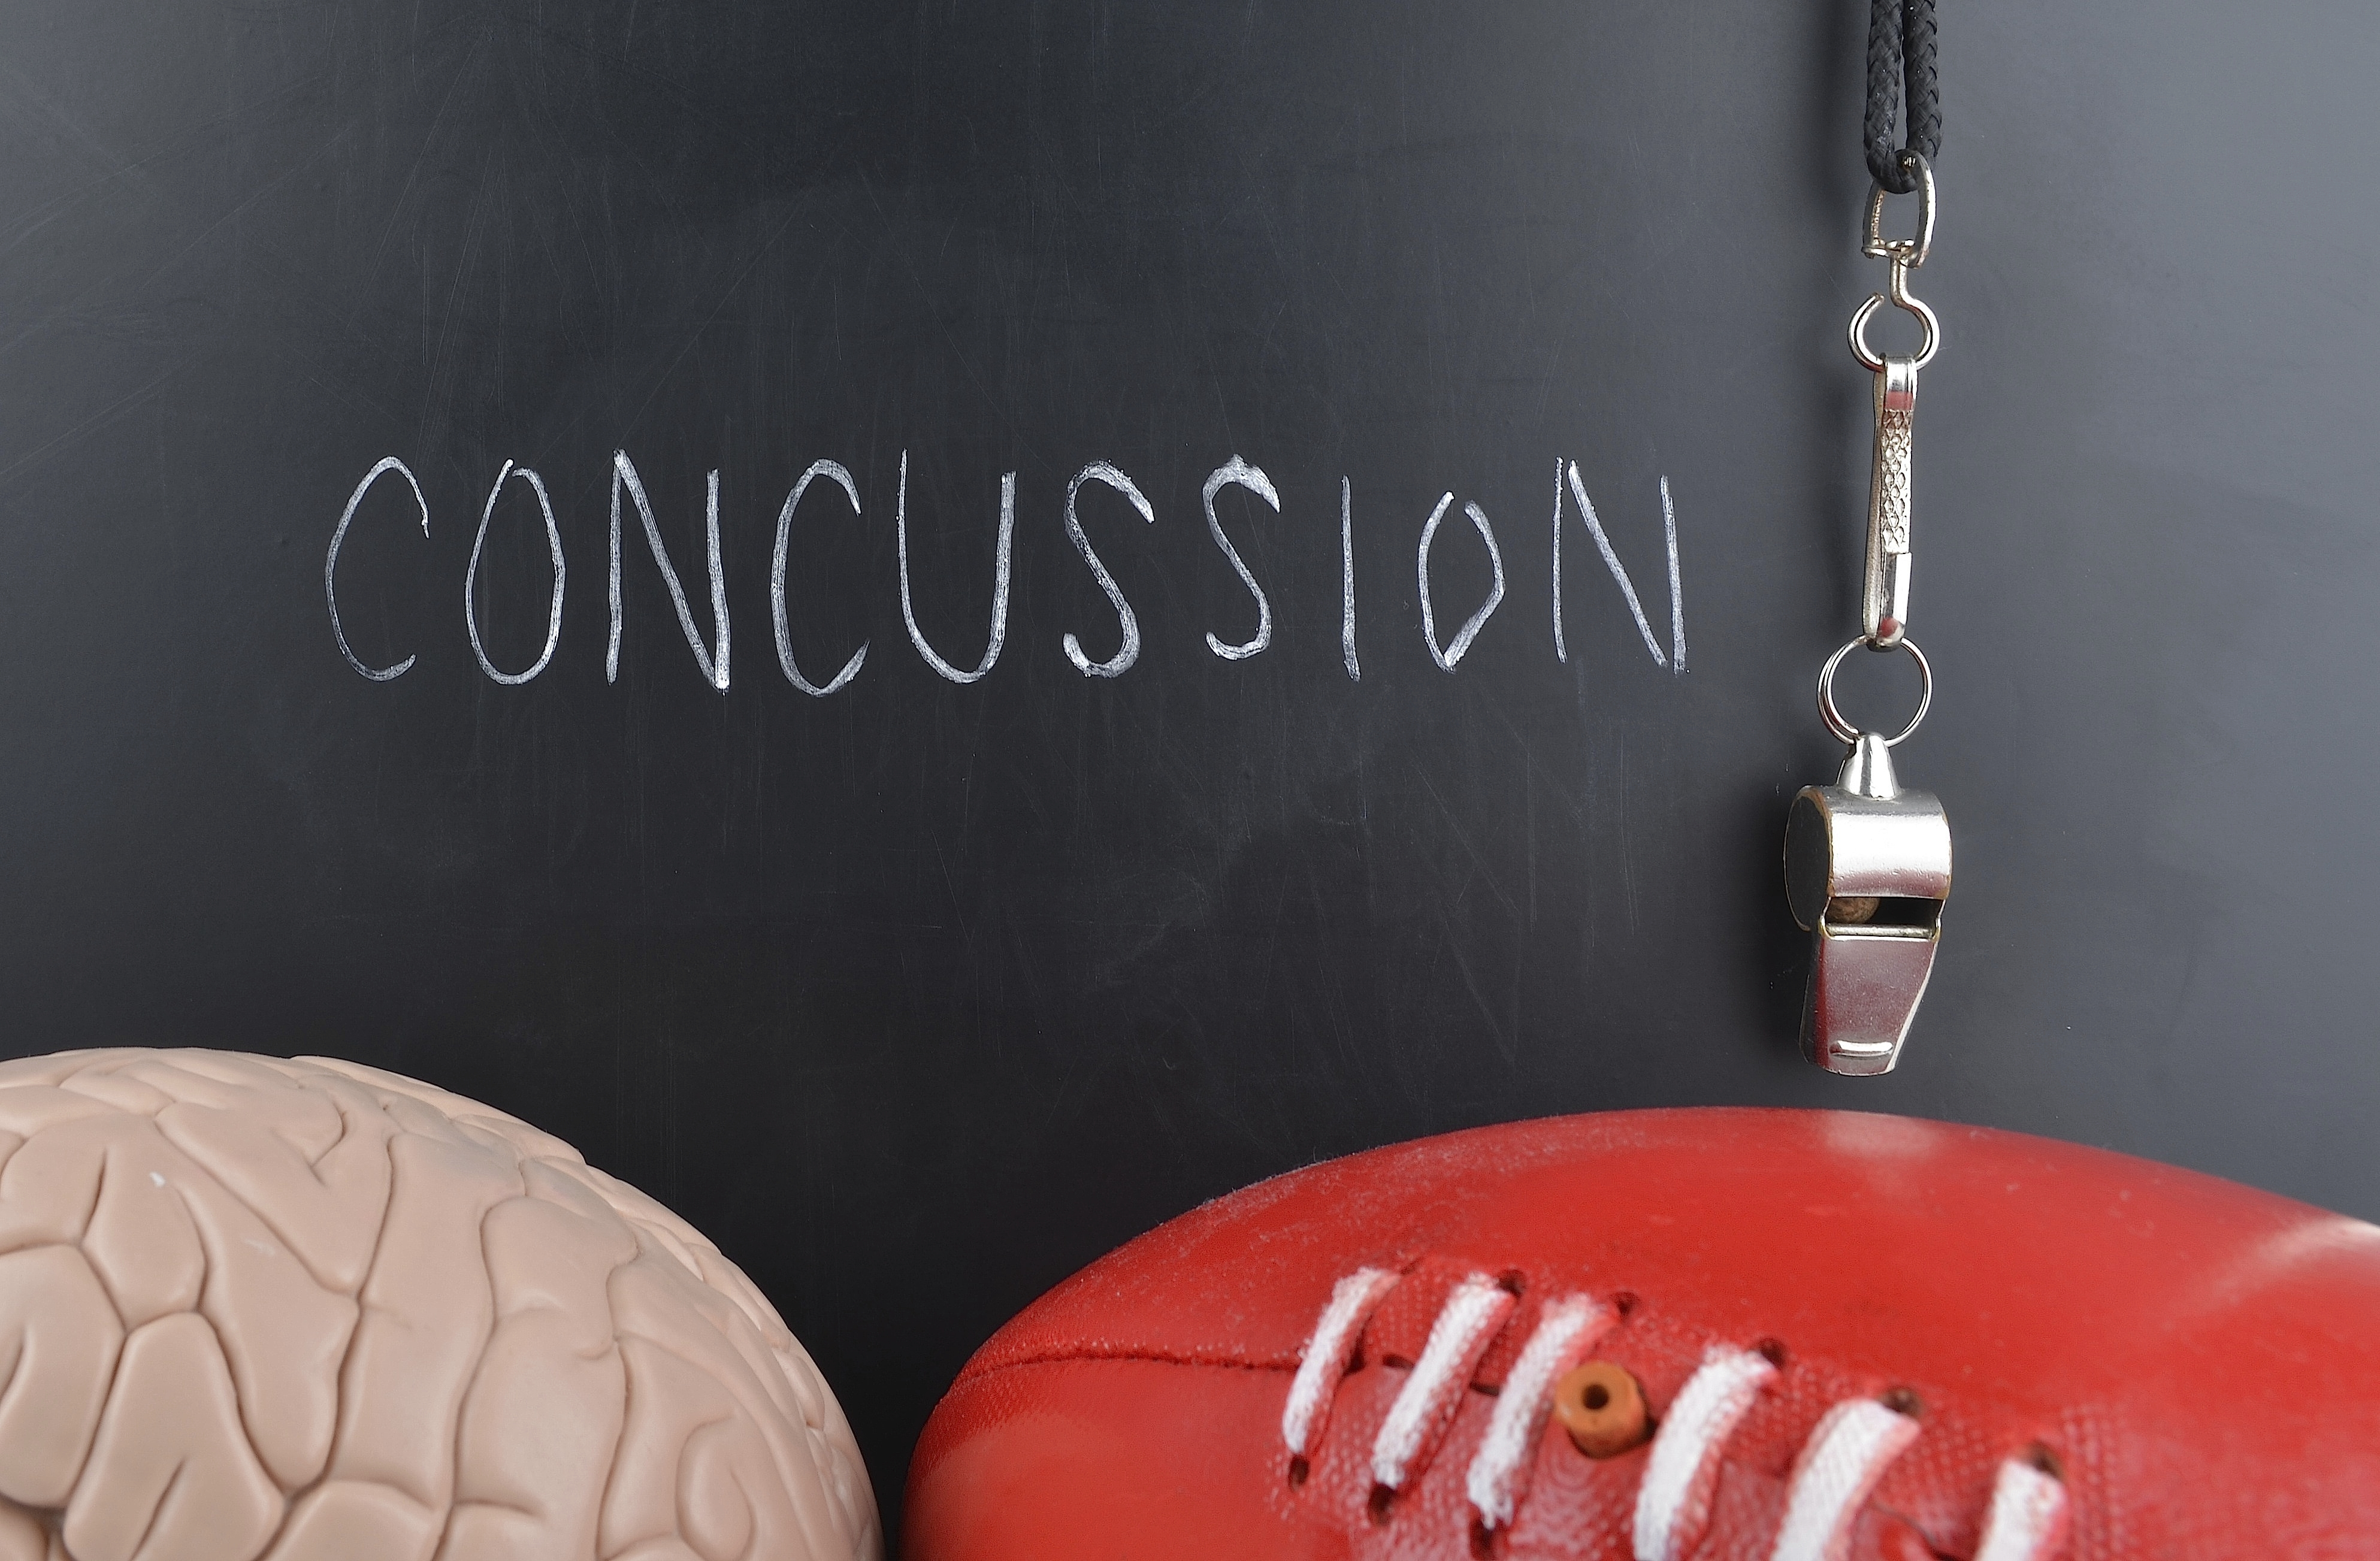 concussions and sports In an effort to reduce concussions, the american academy of pediatrics' council on sports medicine and fitness has proposed restricting body checking among youth ice hockey players (getty images) you can't buy alcohol if you're under 21, or tobacco until you're at least 18 in most states what if.